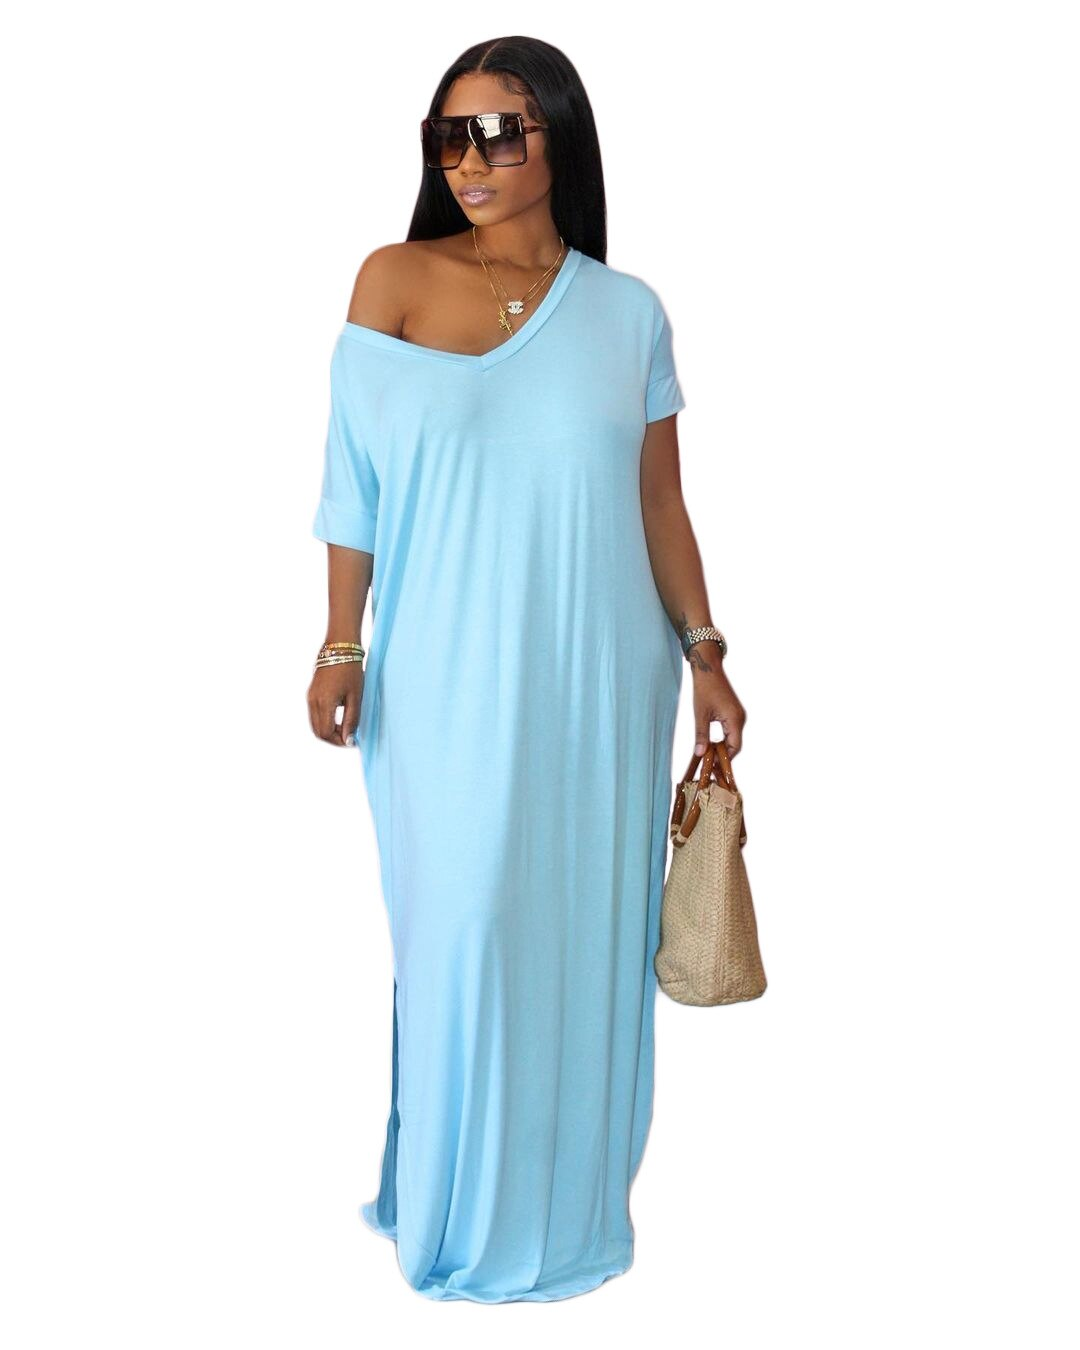 Women's Plus Size Dress Summer 2021 Solid  Pullover Long Skirt Loose and Casual Plus Size Women's Clothing Short Sleeve